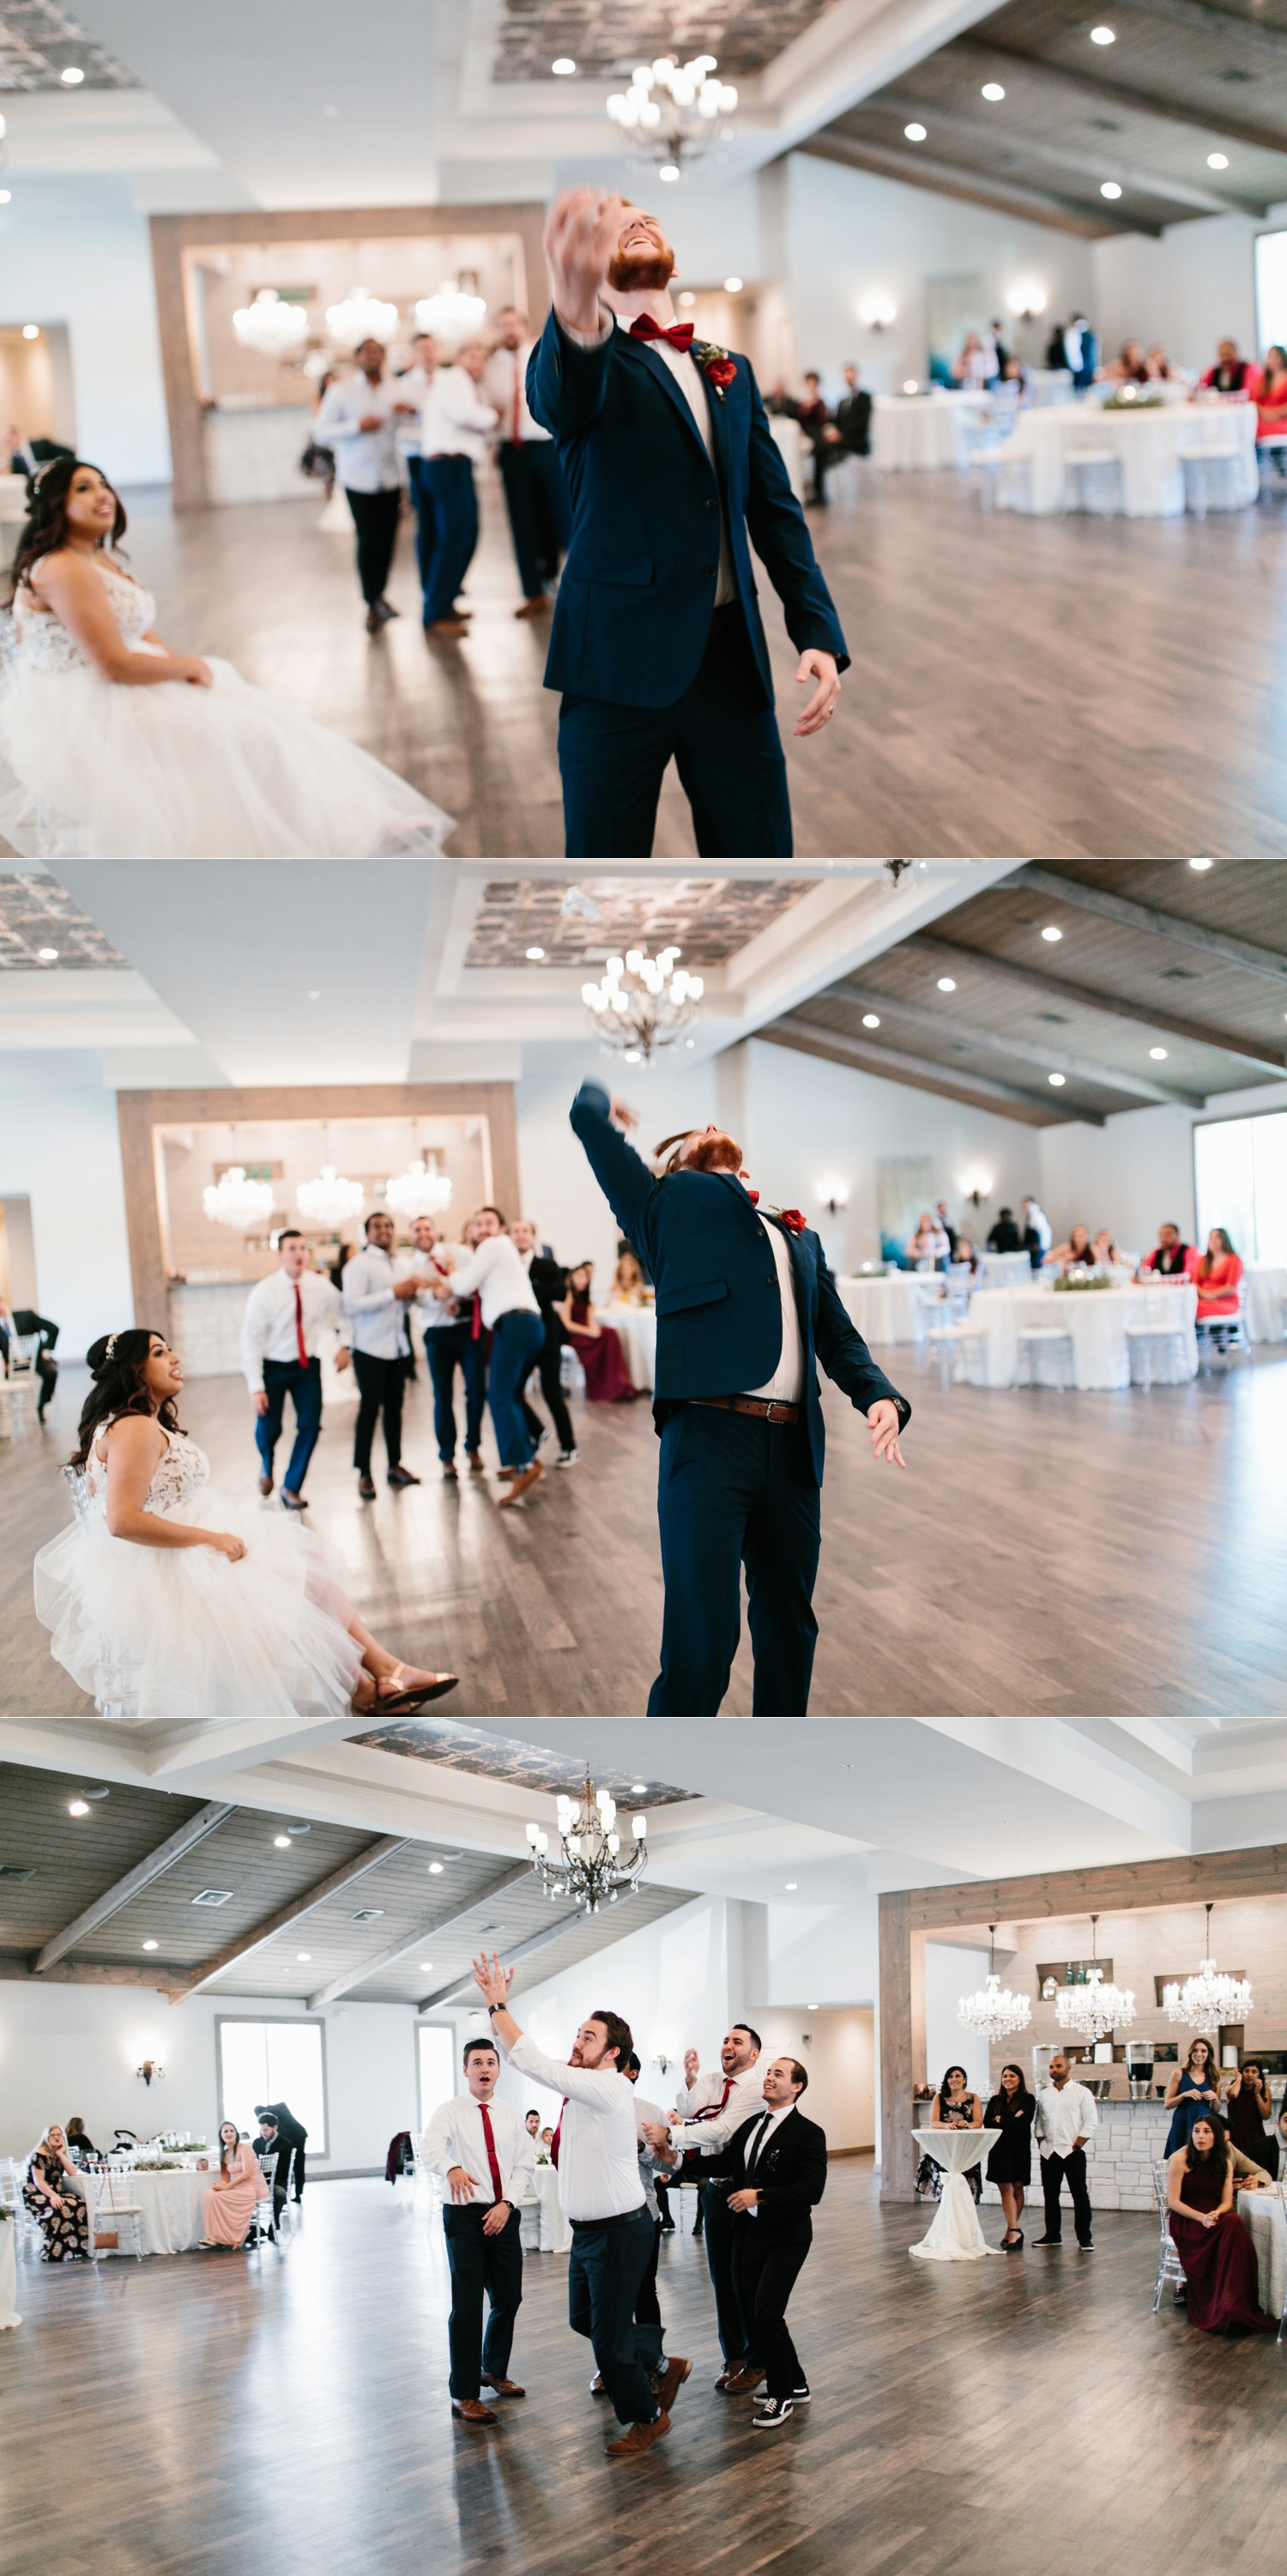 Grant + Lysette | a vibrant, deep burgundy and navy, and mixed metals wedding at Hidden Pines Chapel by North Texas Wedding Photographer Rachel Meagan Photography 174